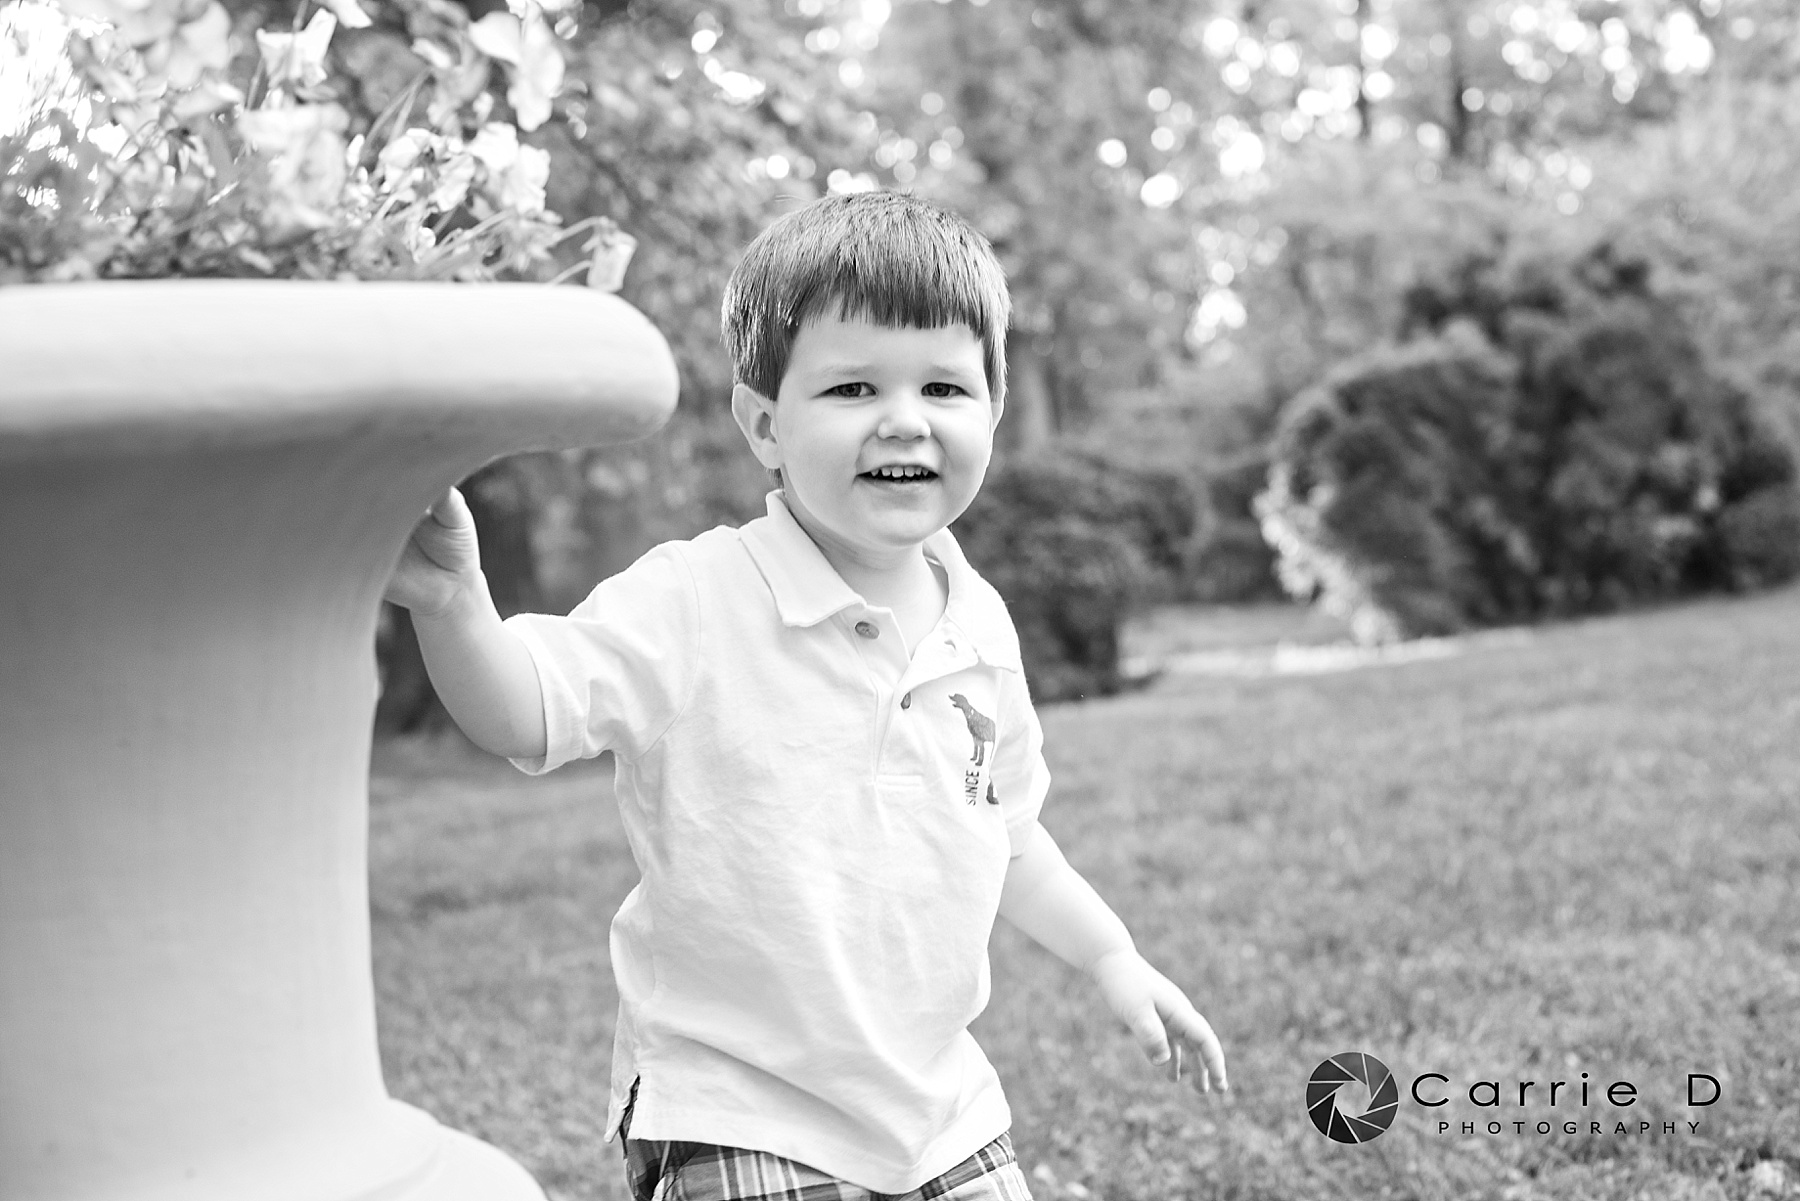 Harford County Photographer – Harford County Portrait Photographer – Harford County Family Photographer – Harford County Child Photographer – Harford County Sibling Photographer – Harford County Natural Light Photographer – Harford County Lifestyle Photographer – Harford County Natural Light Portrait Photographer - Maryland Photographer – Maryland Portrait Photographer – Maryland Family Photographer – Maryland Child Photographer – Maryland Sibling Photographer – Maryland Natural Light Photographer – Maryland Lifestyle Photographer – Maryland Natural Light Portrait Photographer - 2014-06-09_0016